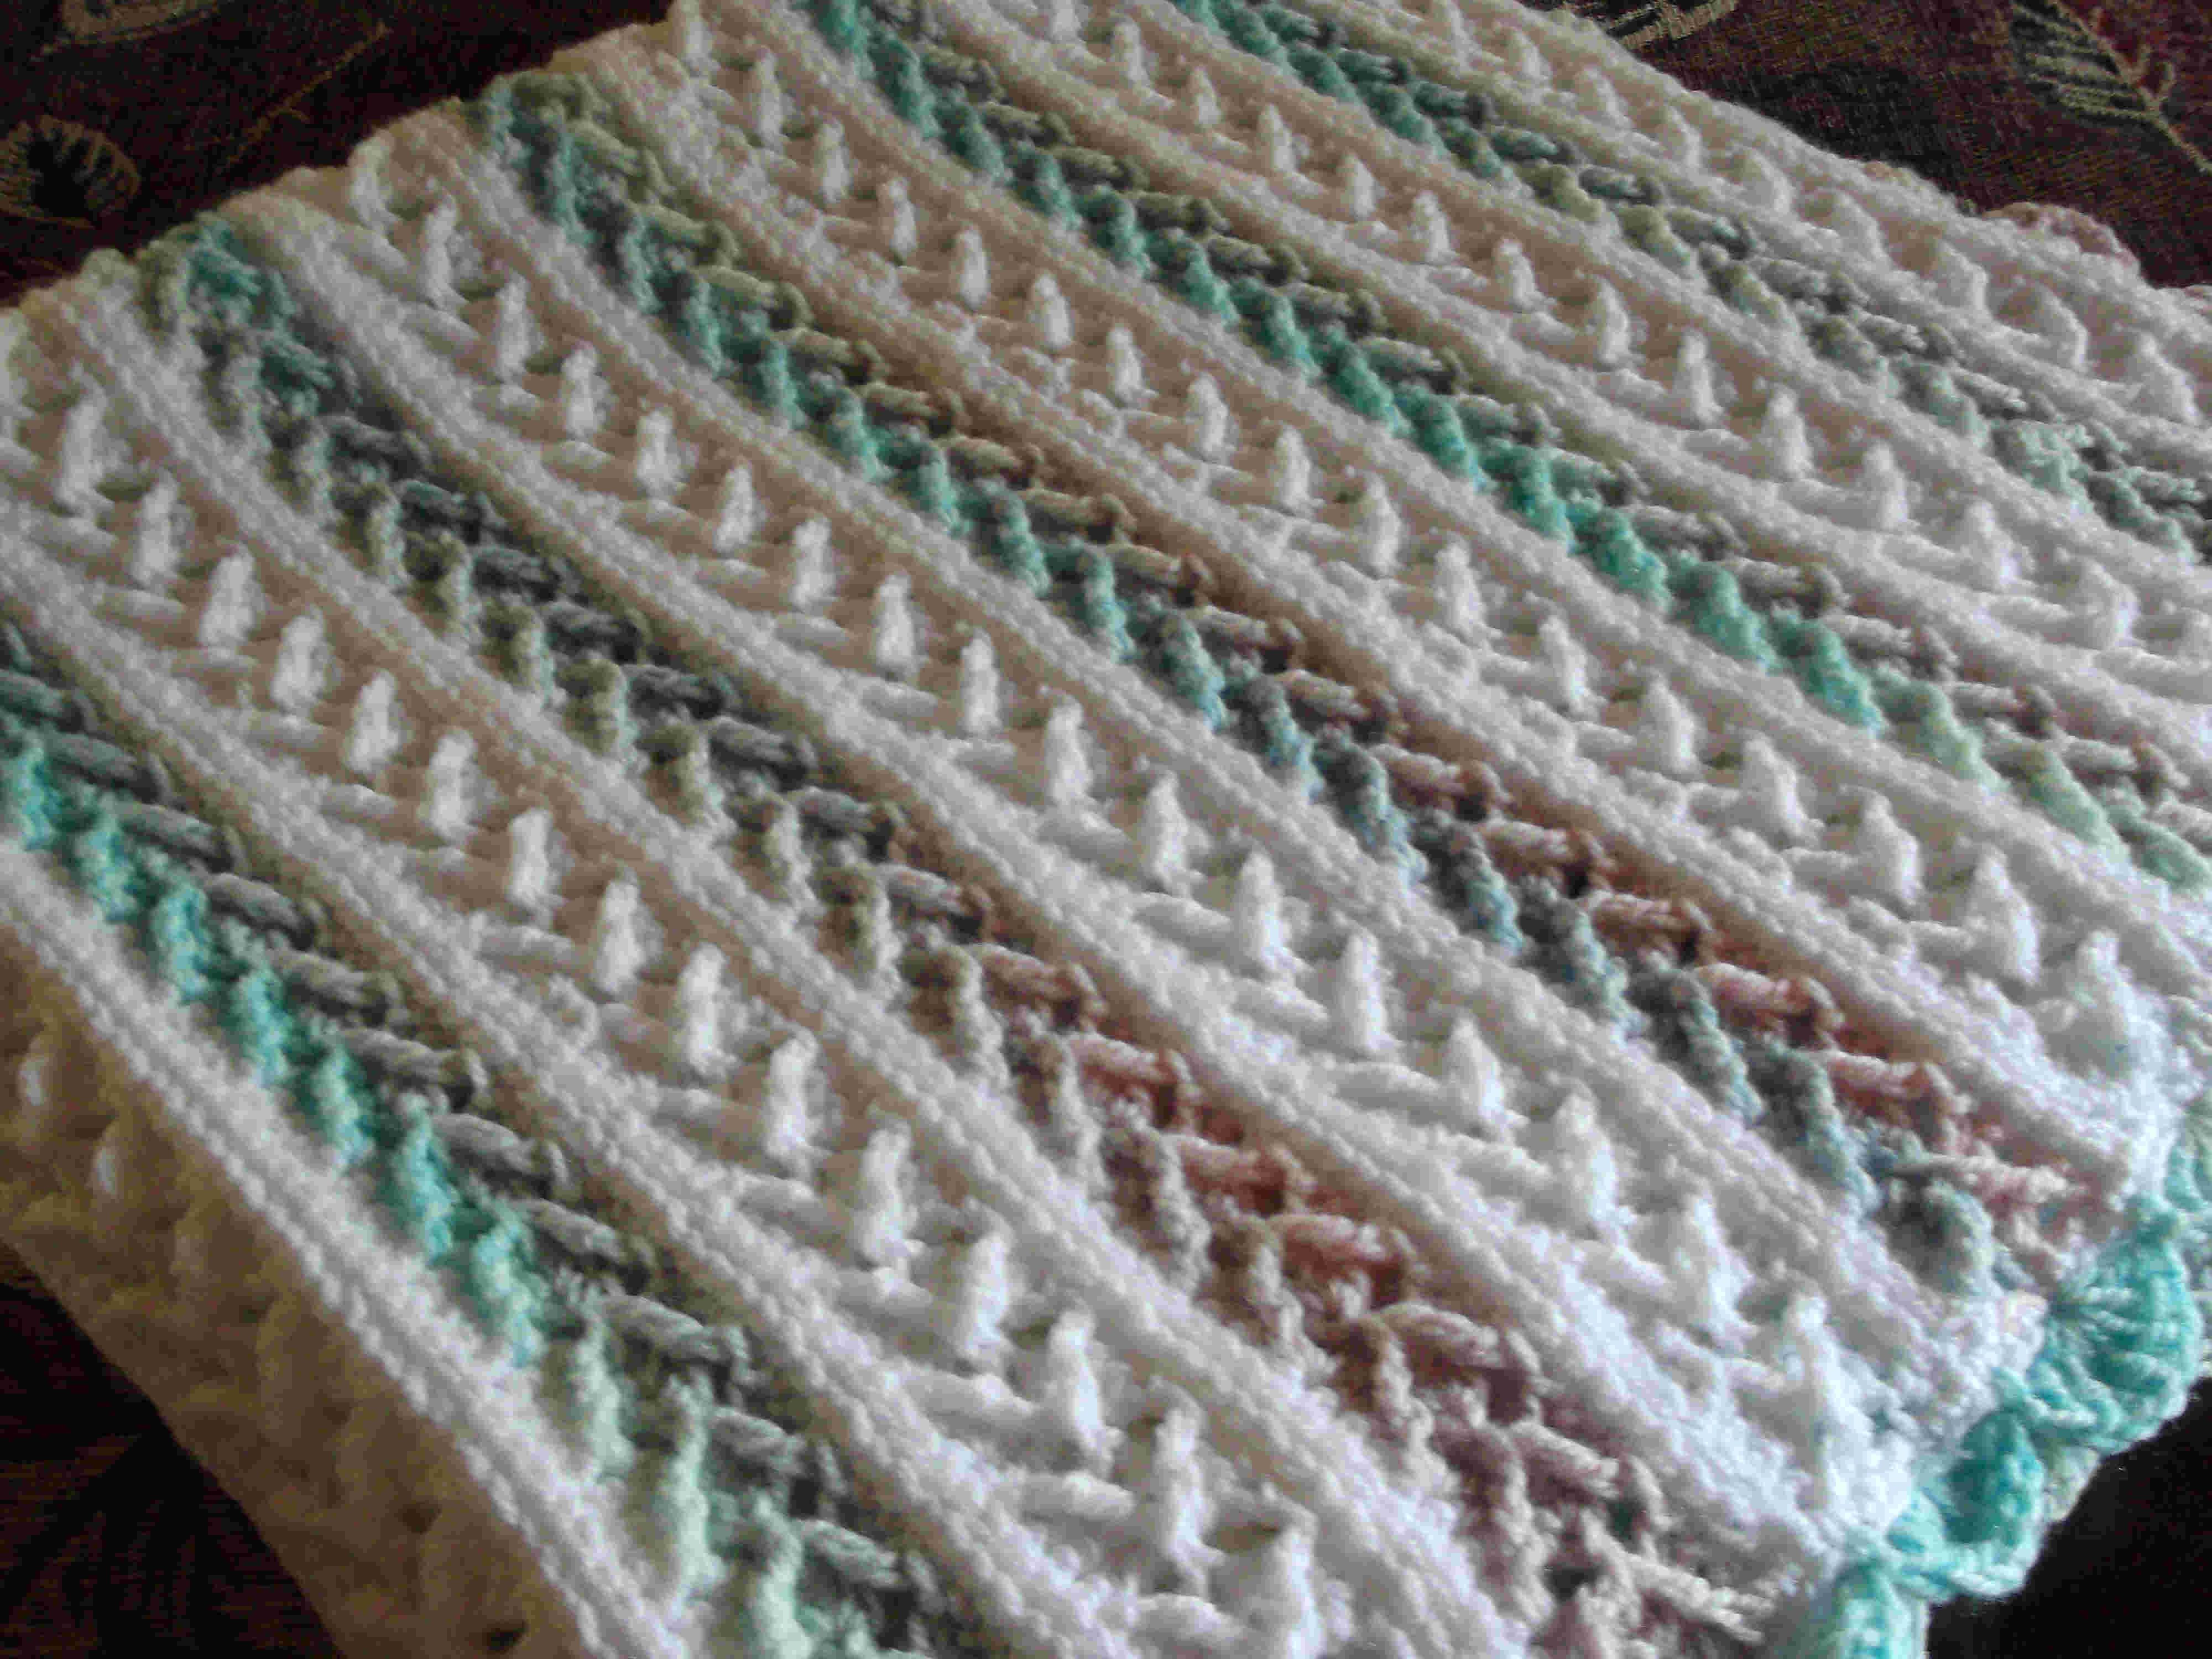 Crochet Afghan Patterns with Pictures Awesome Crochet Afghan Pattern & Idea S On Pinterest Of Gorgeous 43 Photos Crochet Afghan Patterns with Pictures